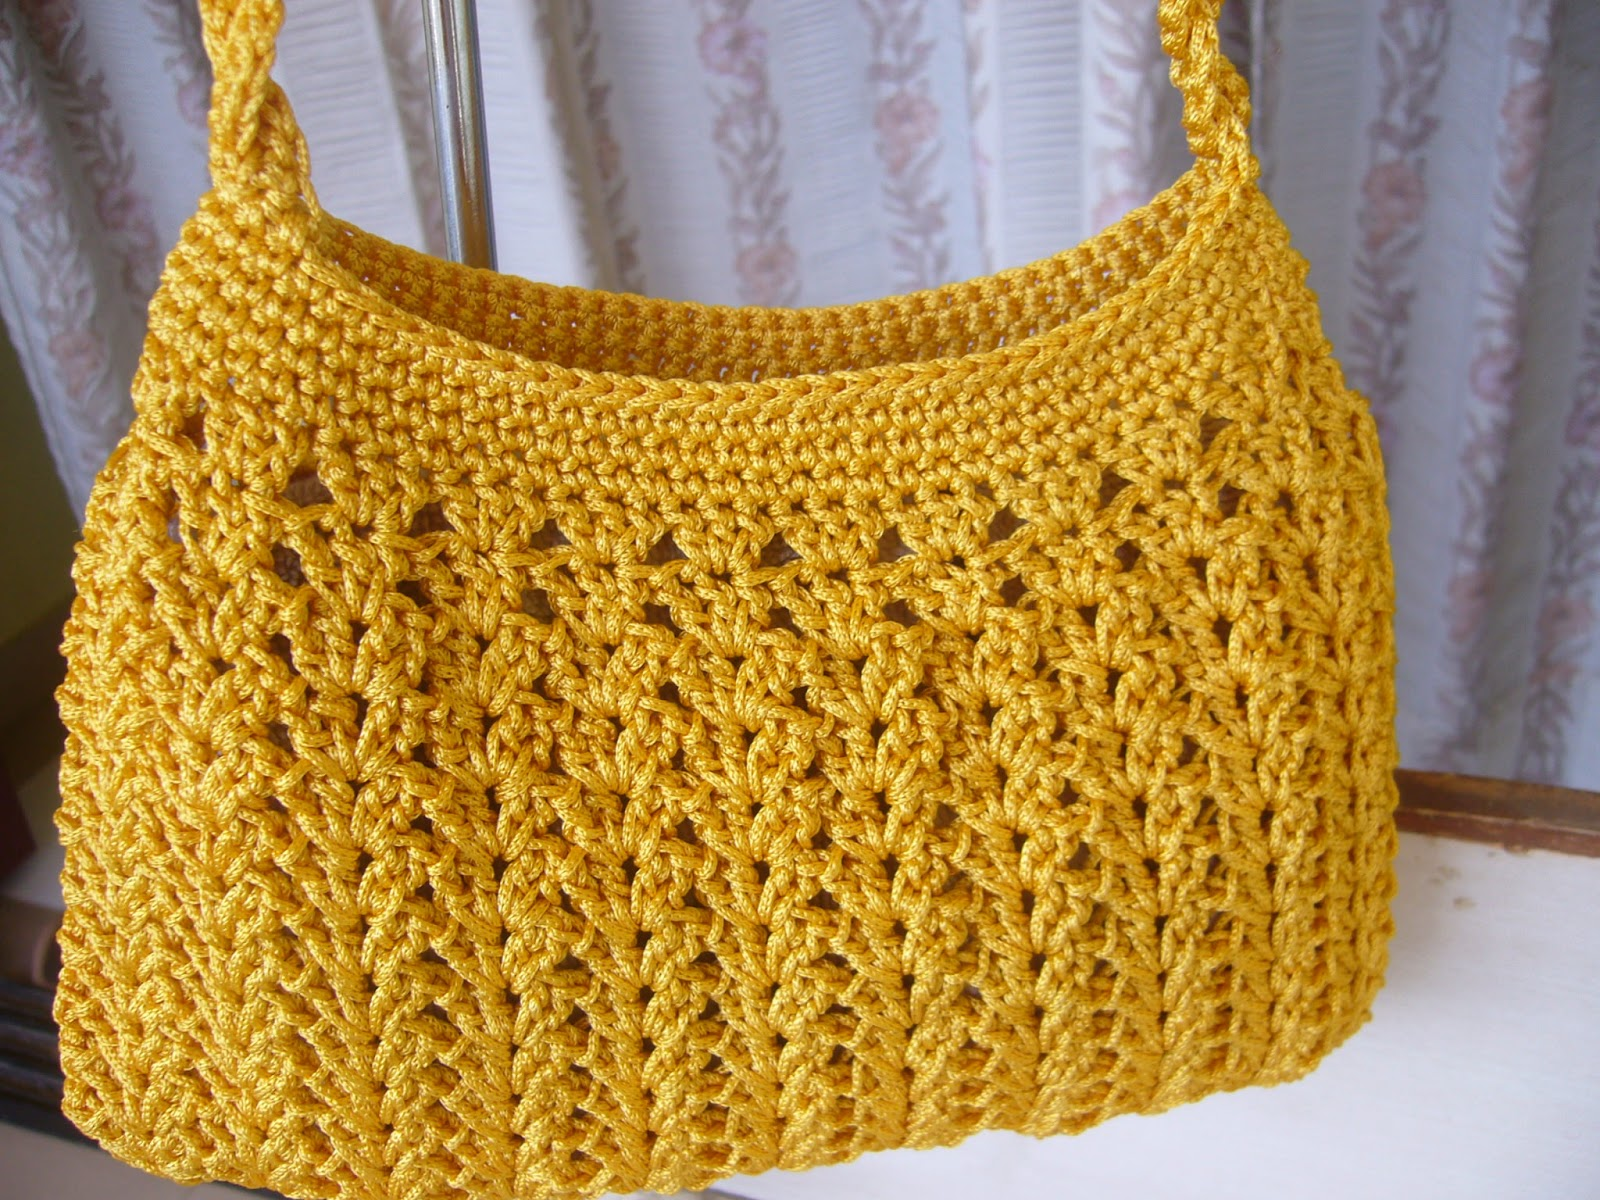 Crochet Backpack Purse : Crochetkari: February 2013